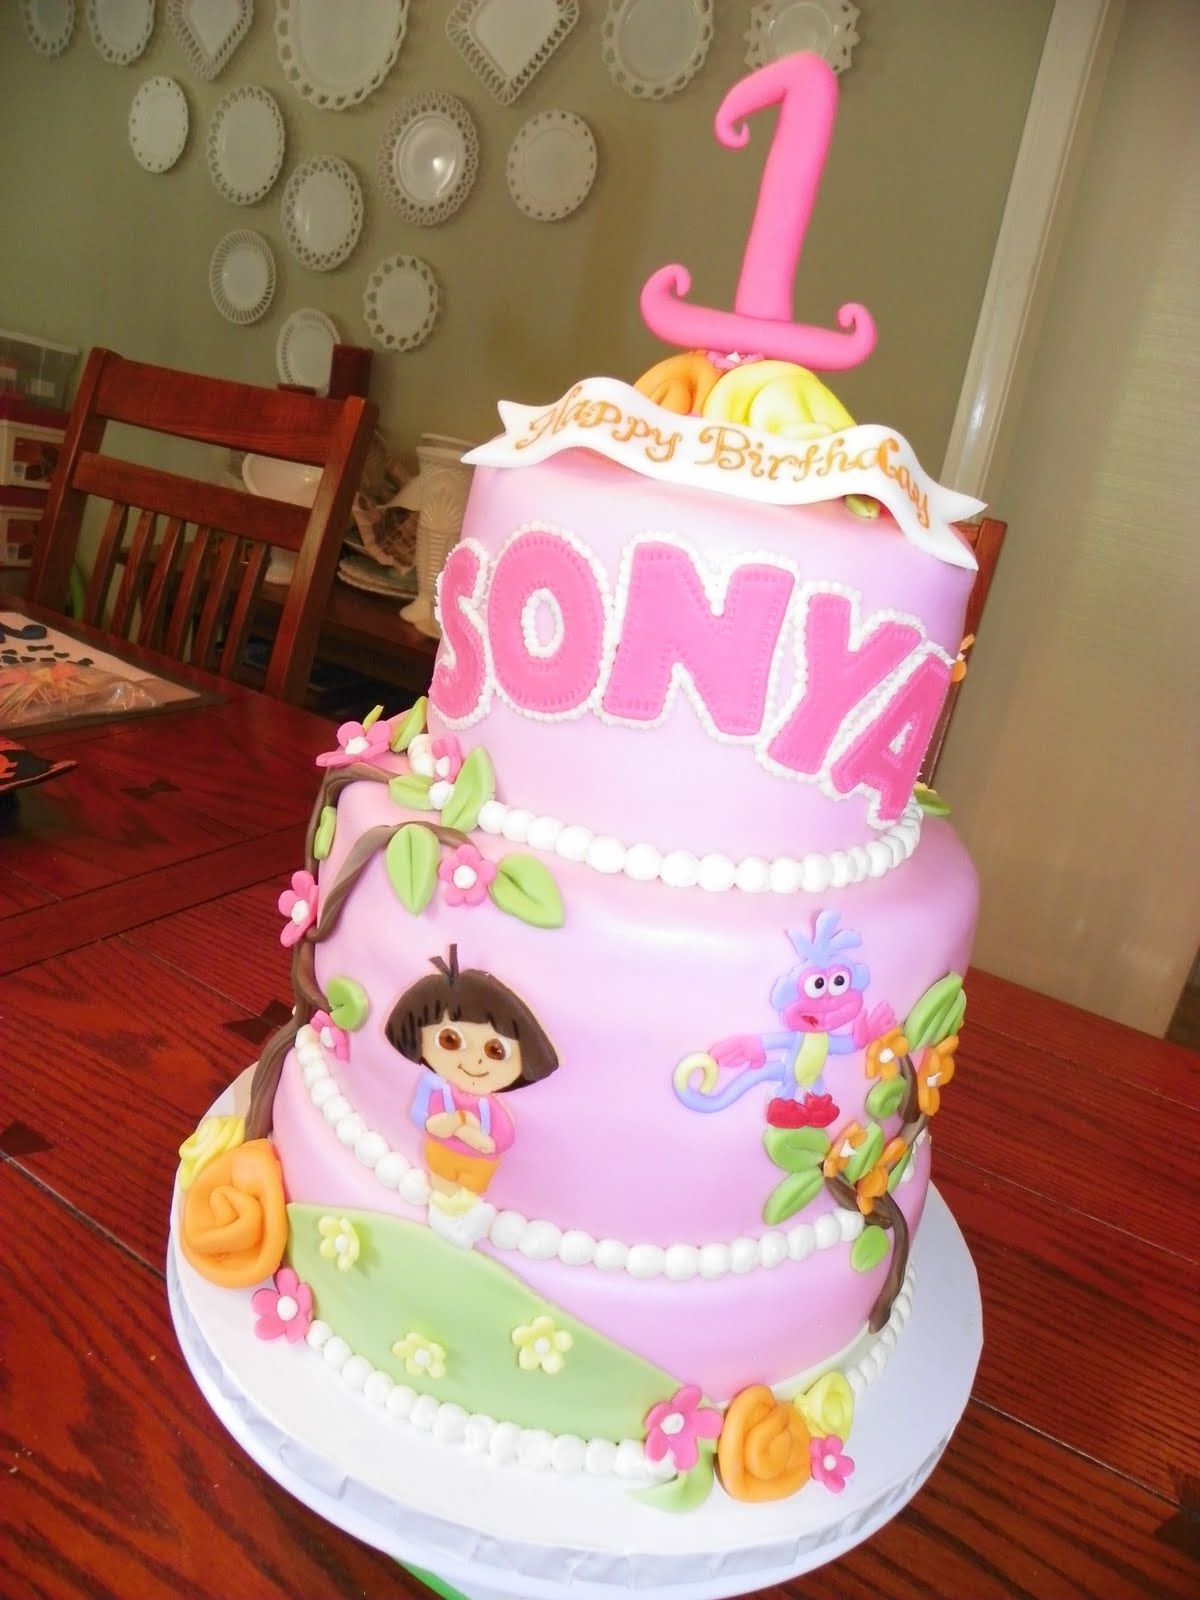 Dora the Explorer Birthday Cakes for Girls